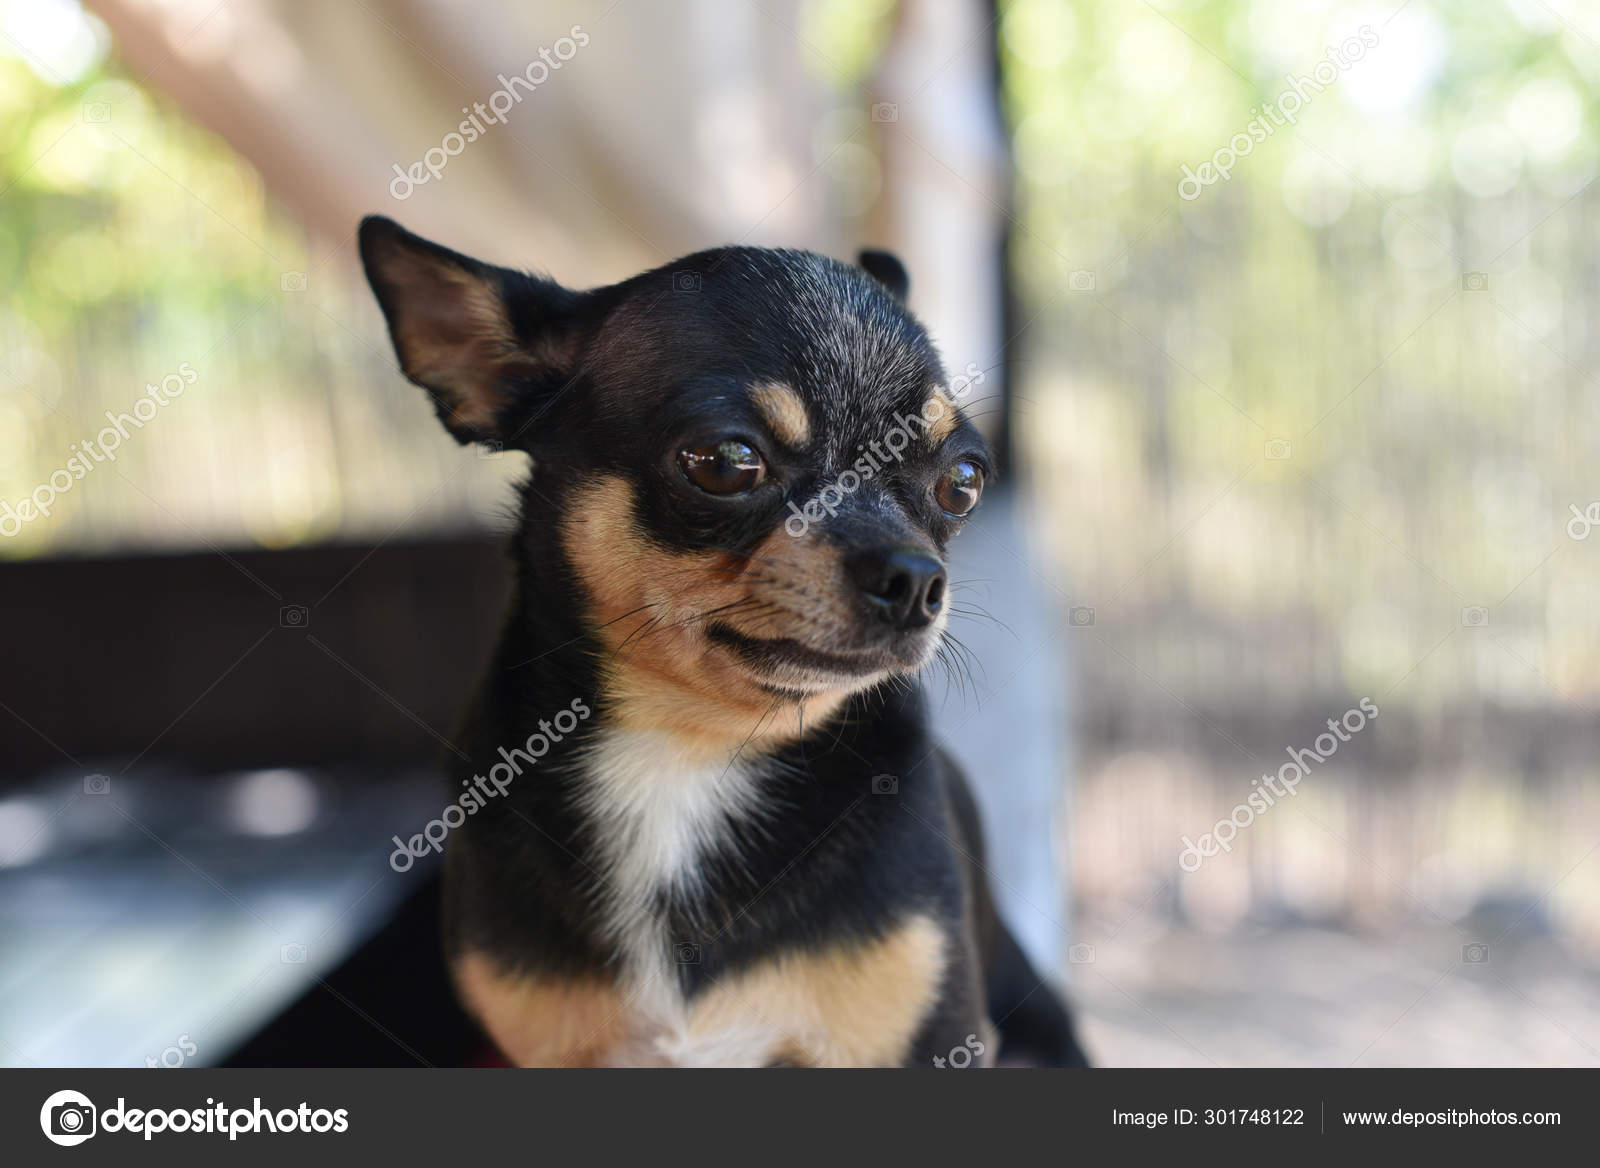 Chihuahua Is Sitting On The Bench The Dog Walks In The Park Black Brown White Color Of Chihuahua Stock Photo C Kapinosova 301748122